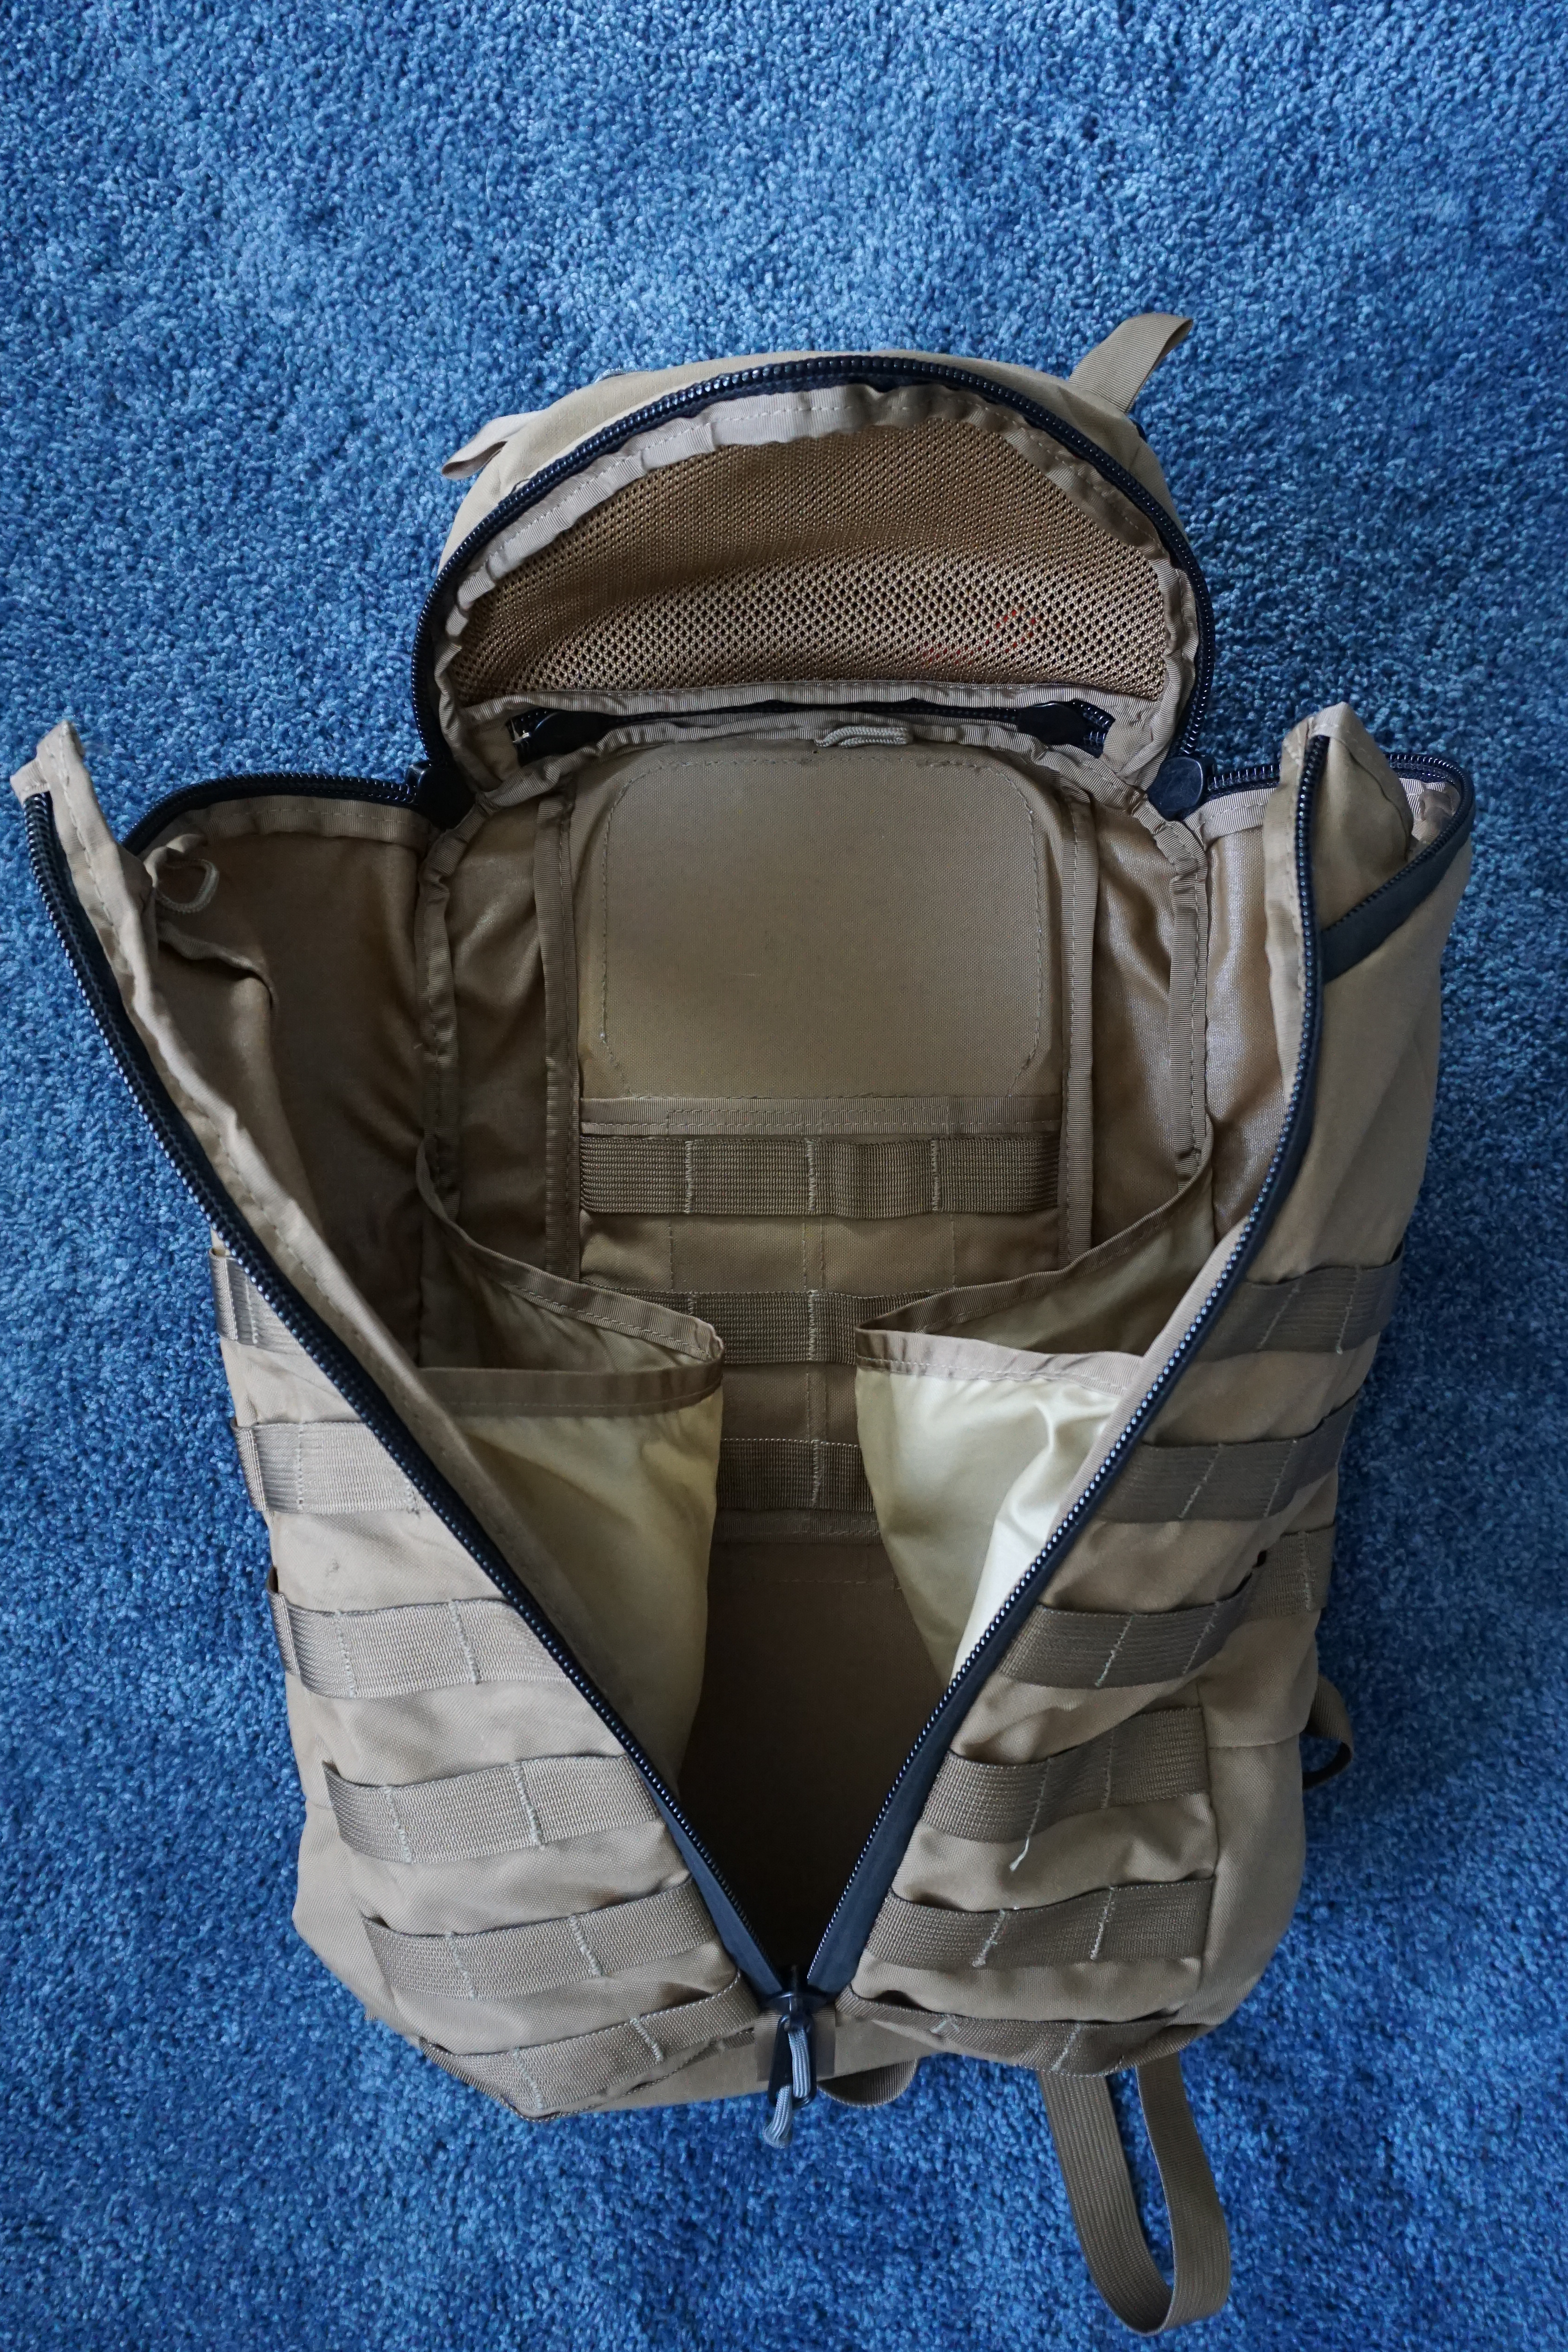 Mystery Ranch ASAP backpack review main compartment empty